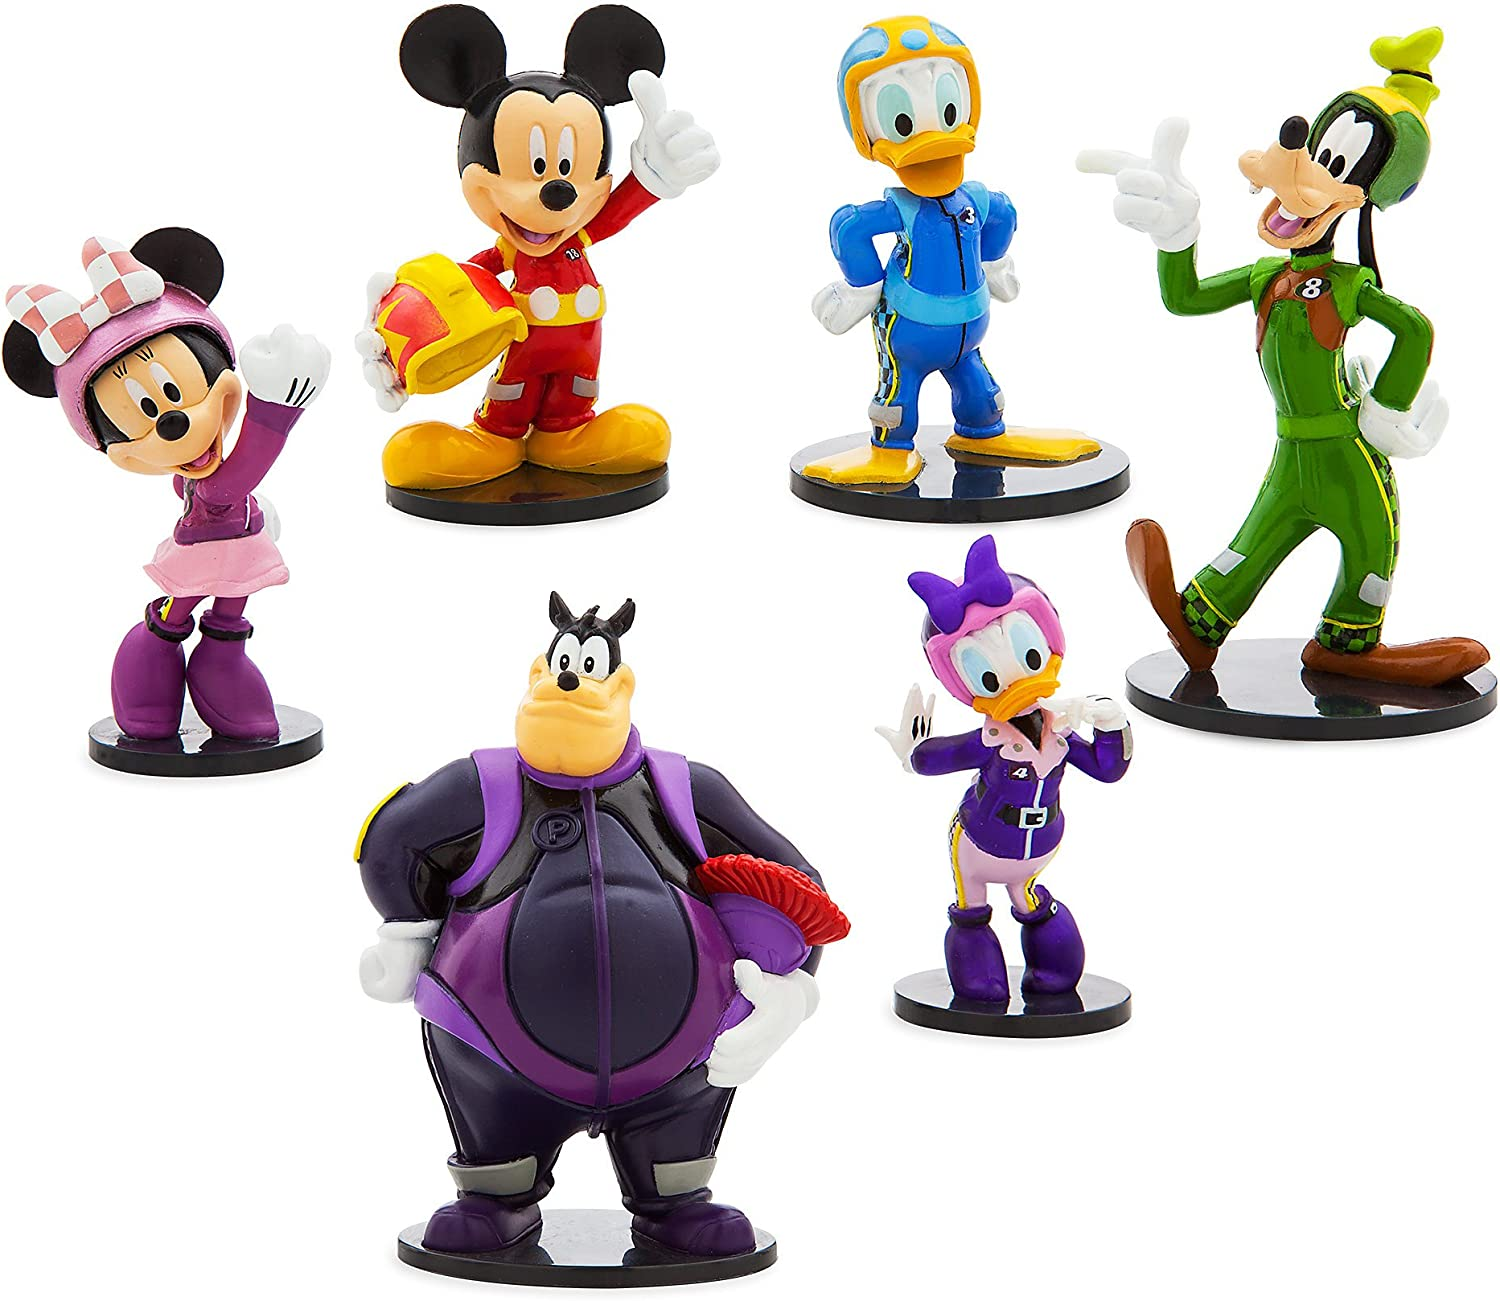 Disney Mickey Mouse and The Roadster Racers Figure Play Set: Amazon.es: Juguetes y juegos